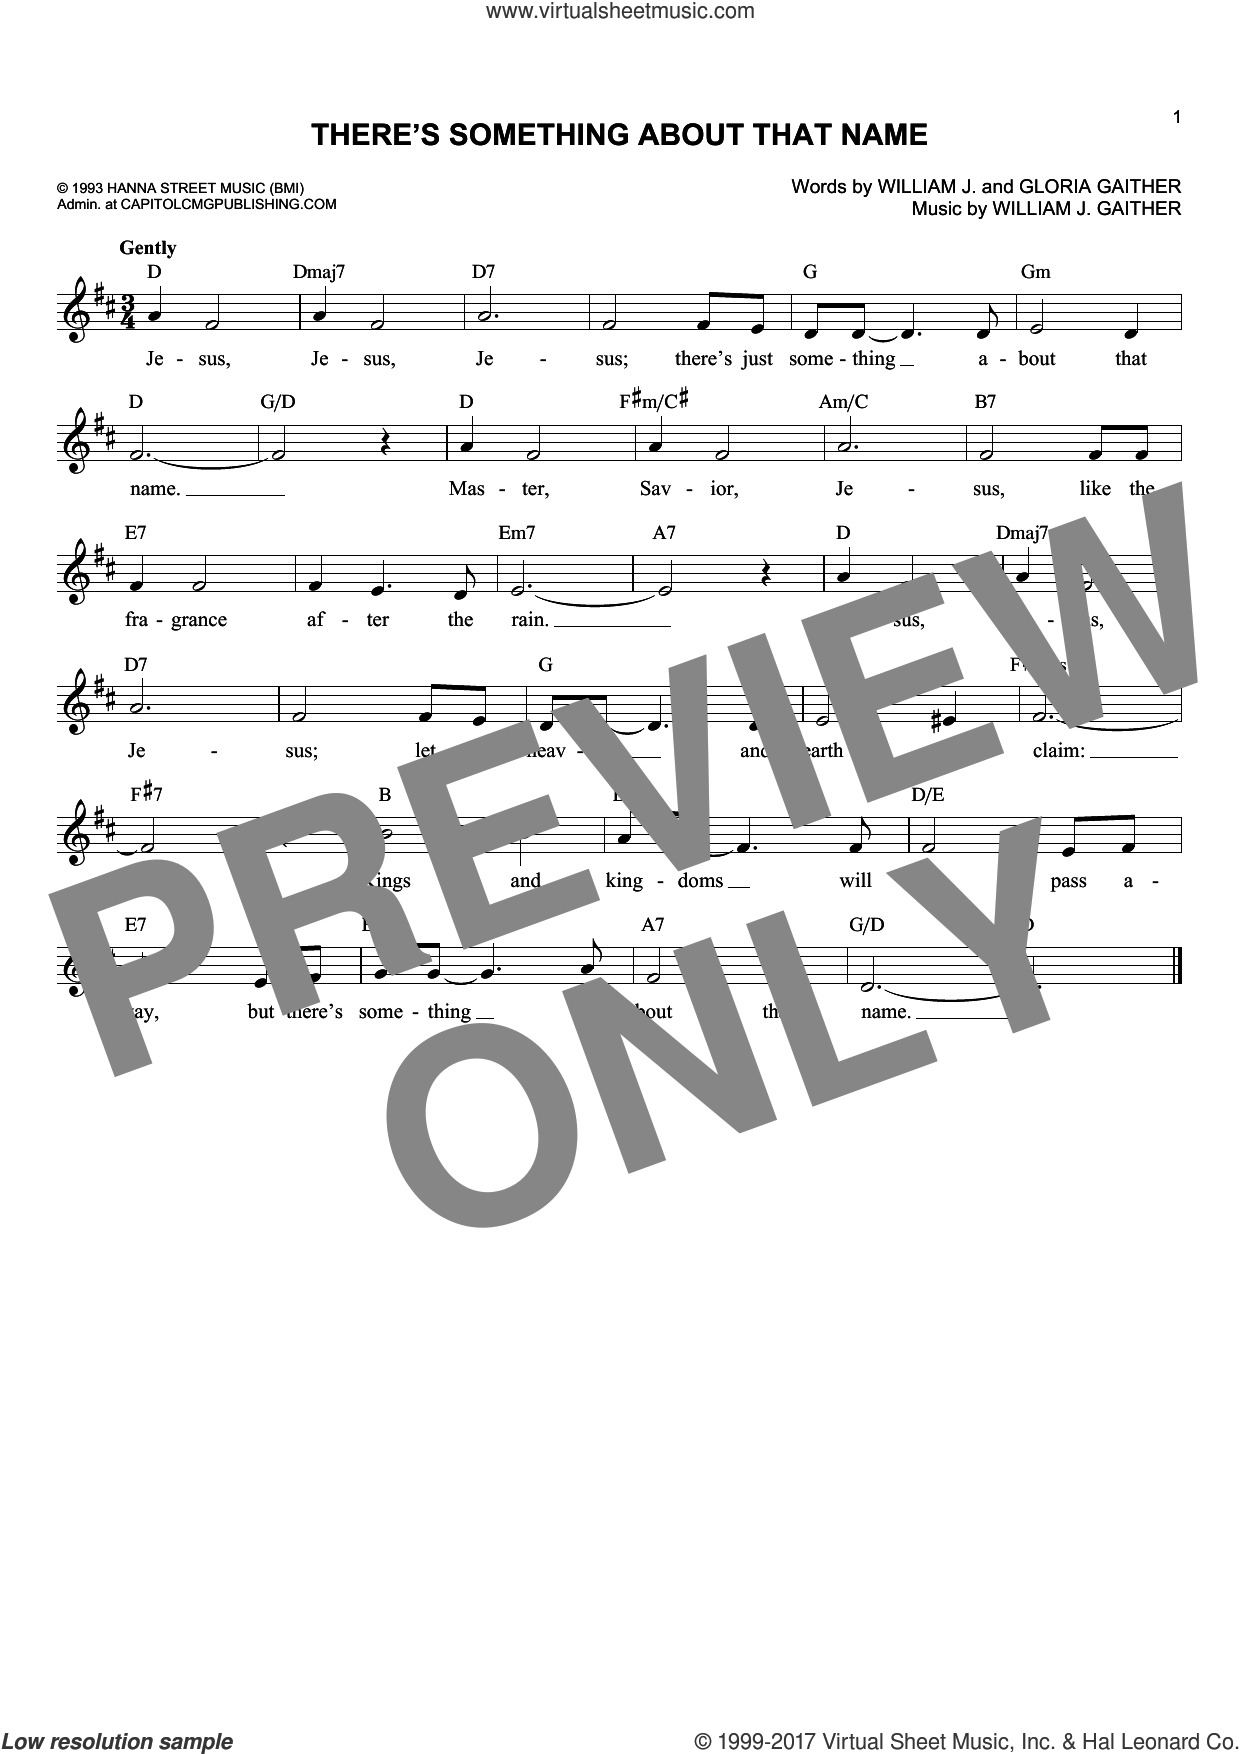 There's Something About That Name sheet music for voice and other instruments (fake book) by Gloria Gaither and William J. Gaither. Score Image Preview.